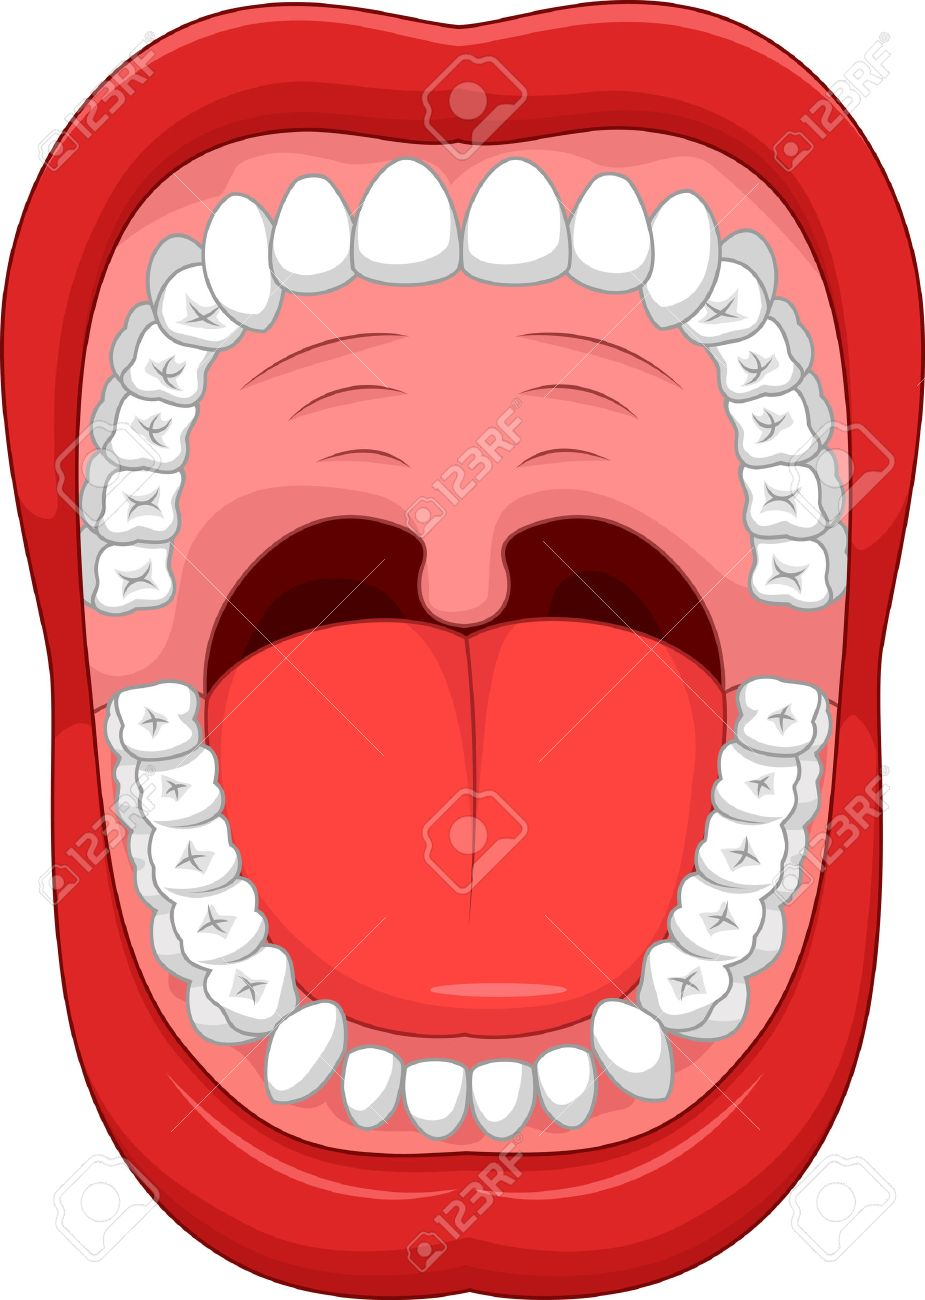 parts of human mouth cartoon open mouth and white healthy tooth rh 123rf com open mouth cartoon t shirt open mouth cartoon vector